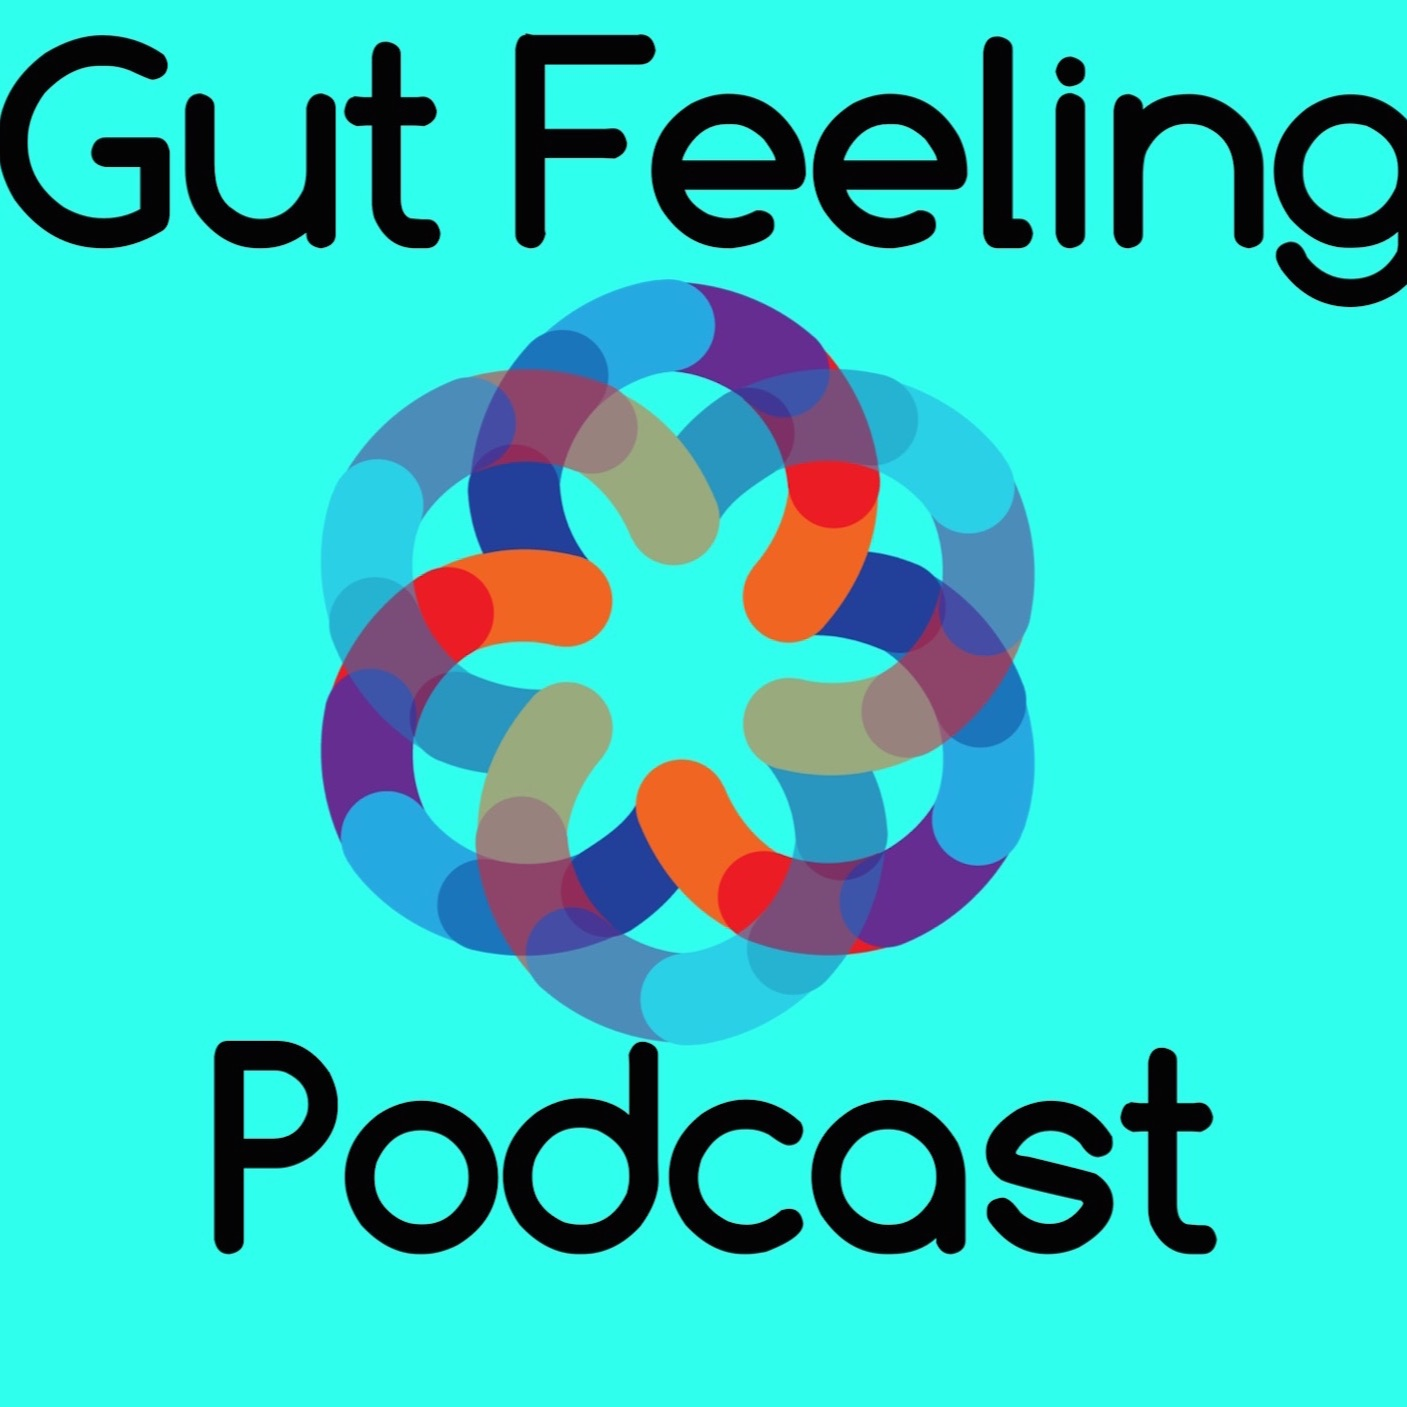 Gut Feeling Podcast - Helping You Deal With That Bad Feeling In Your Gut